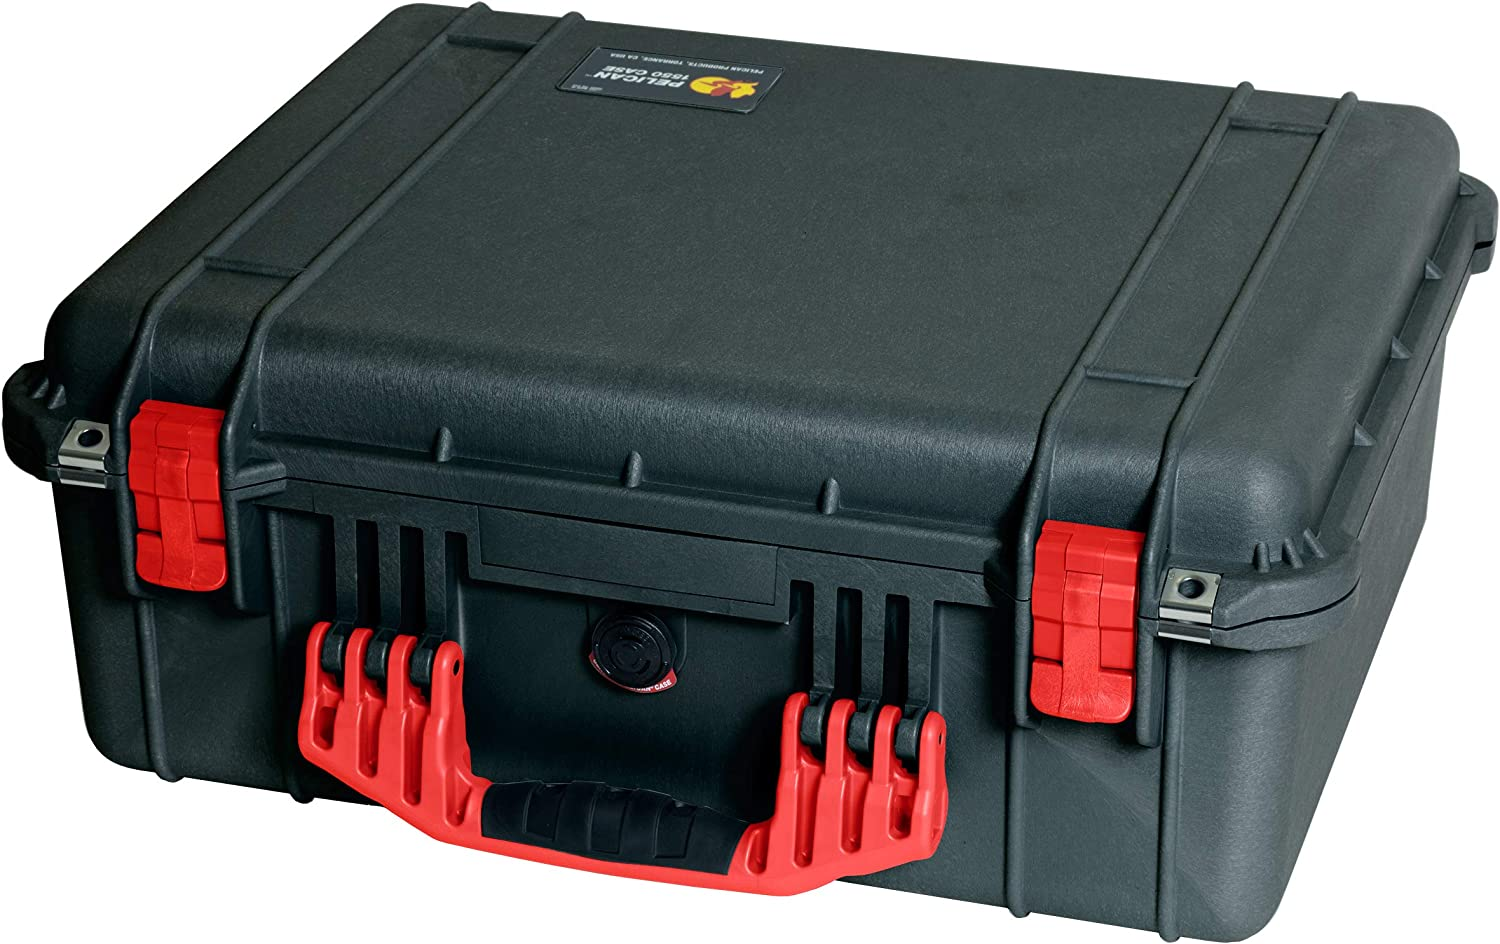 Black /& Red Pelican 1550 Case Comes with Grey CVPKG dividers.